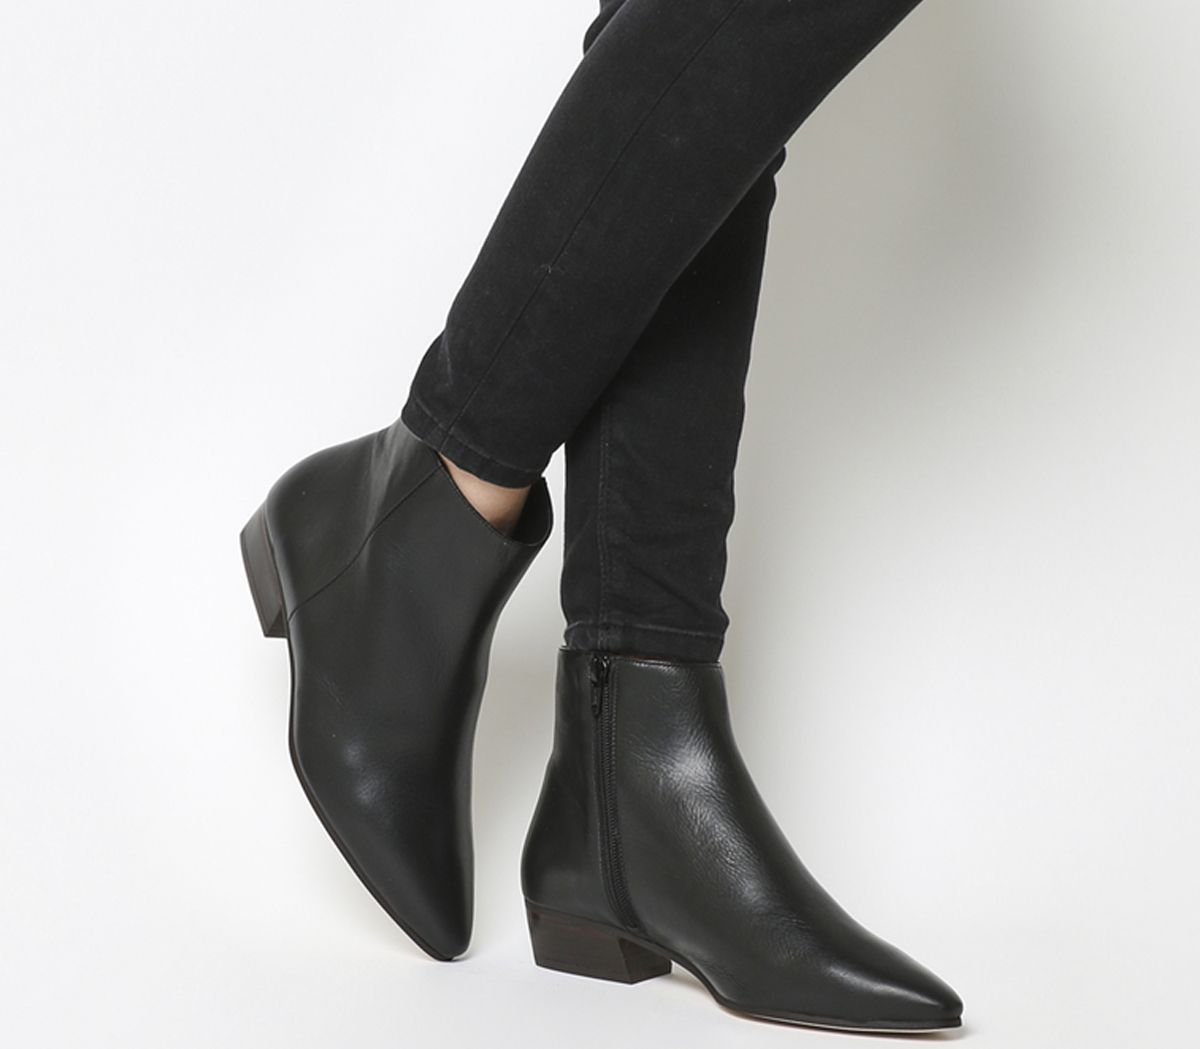 ca598a9e6208 Office Andalucia Casual Low Heel Boots Black Leather - Ankle Boots